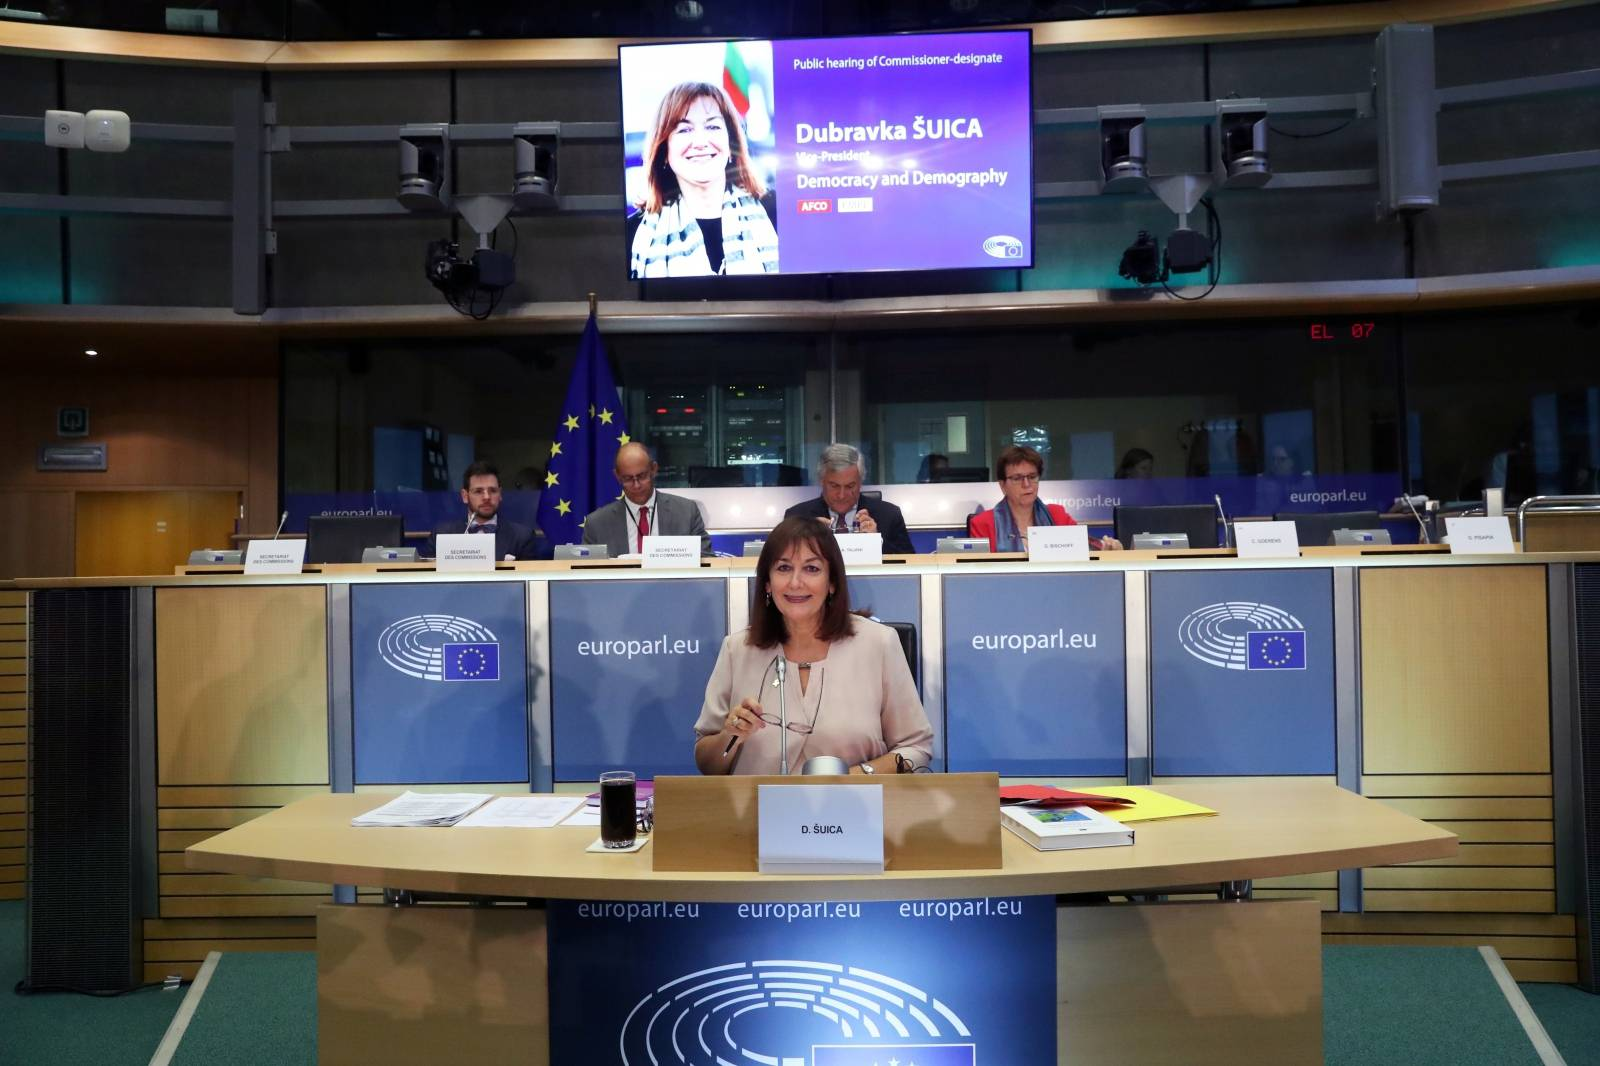 European for Democracy and Demography Commissioner-designate Dubravka Suica of Croatia attends her hearing before the European Parliament in Brussels